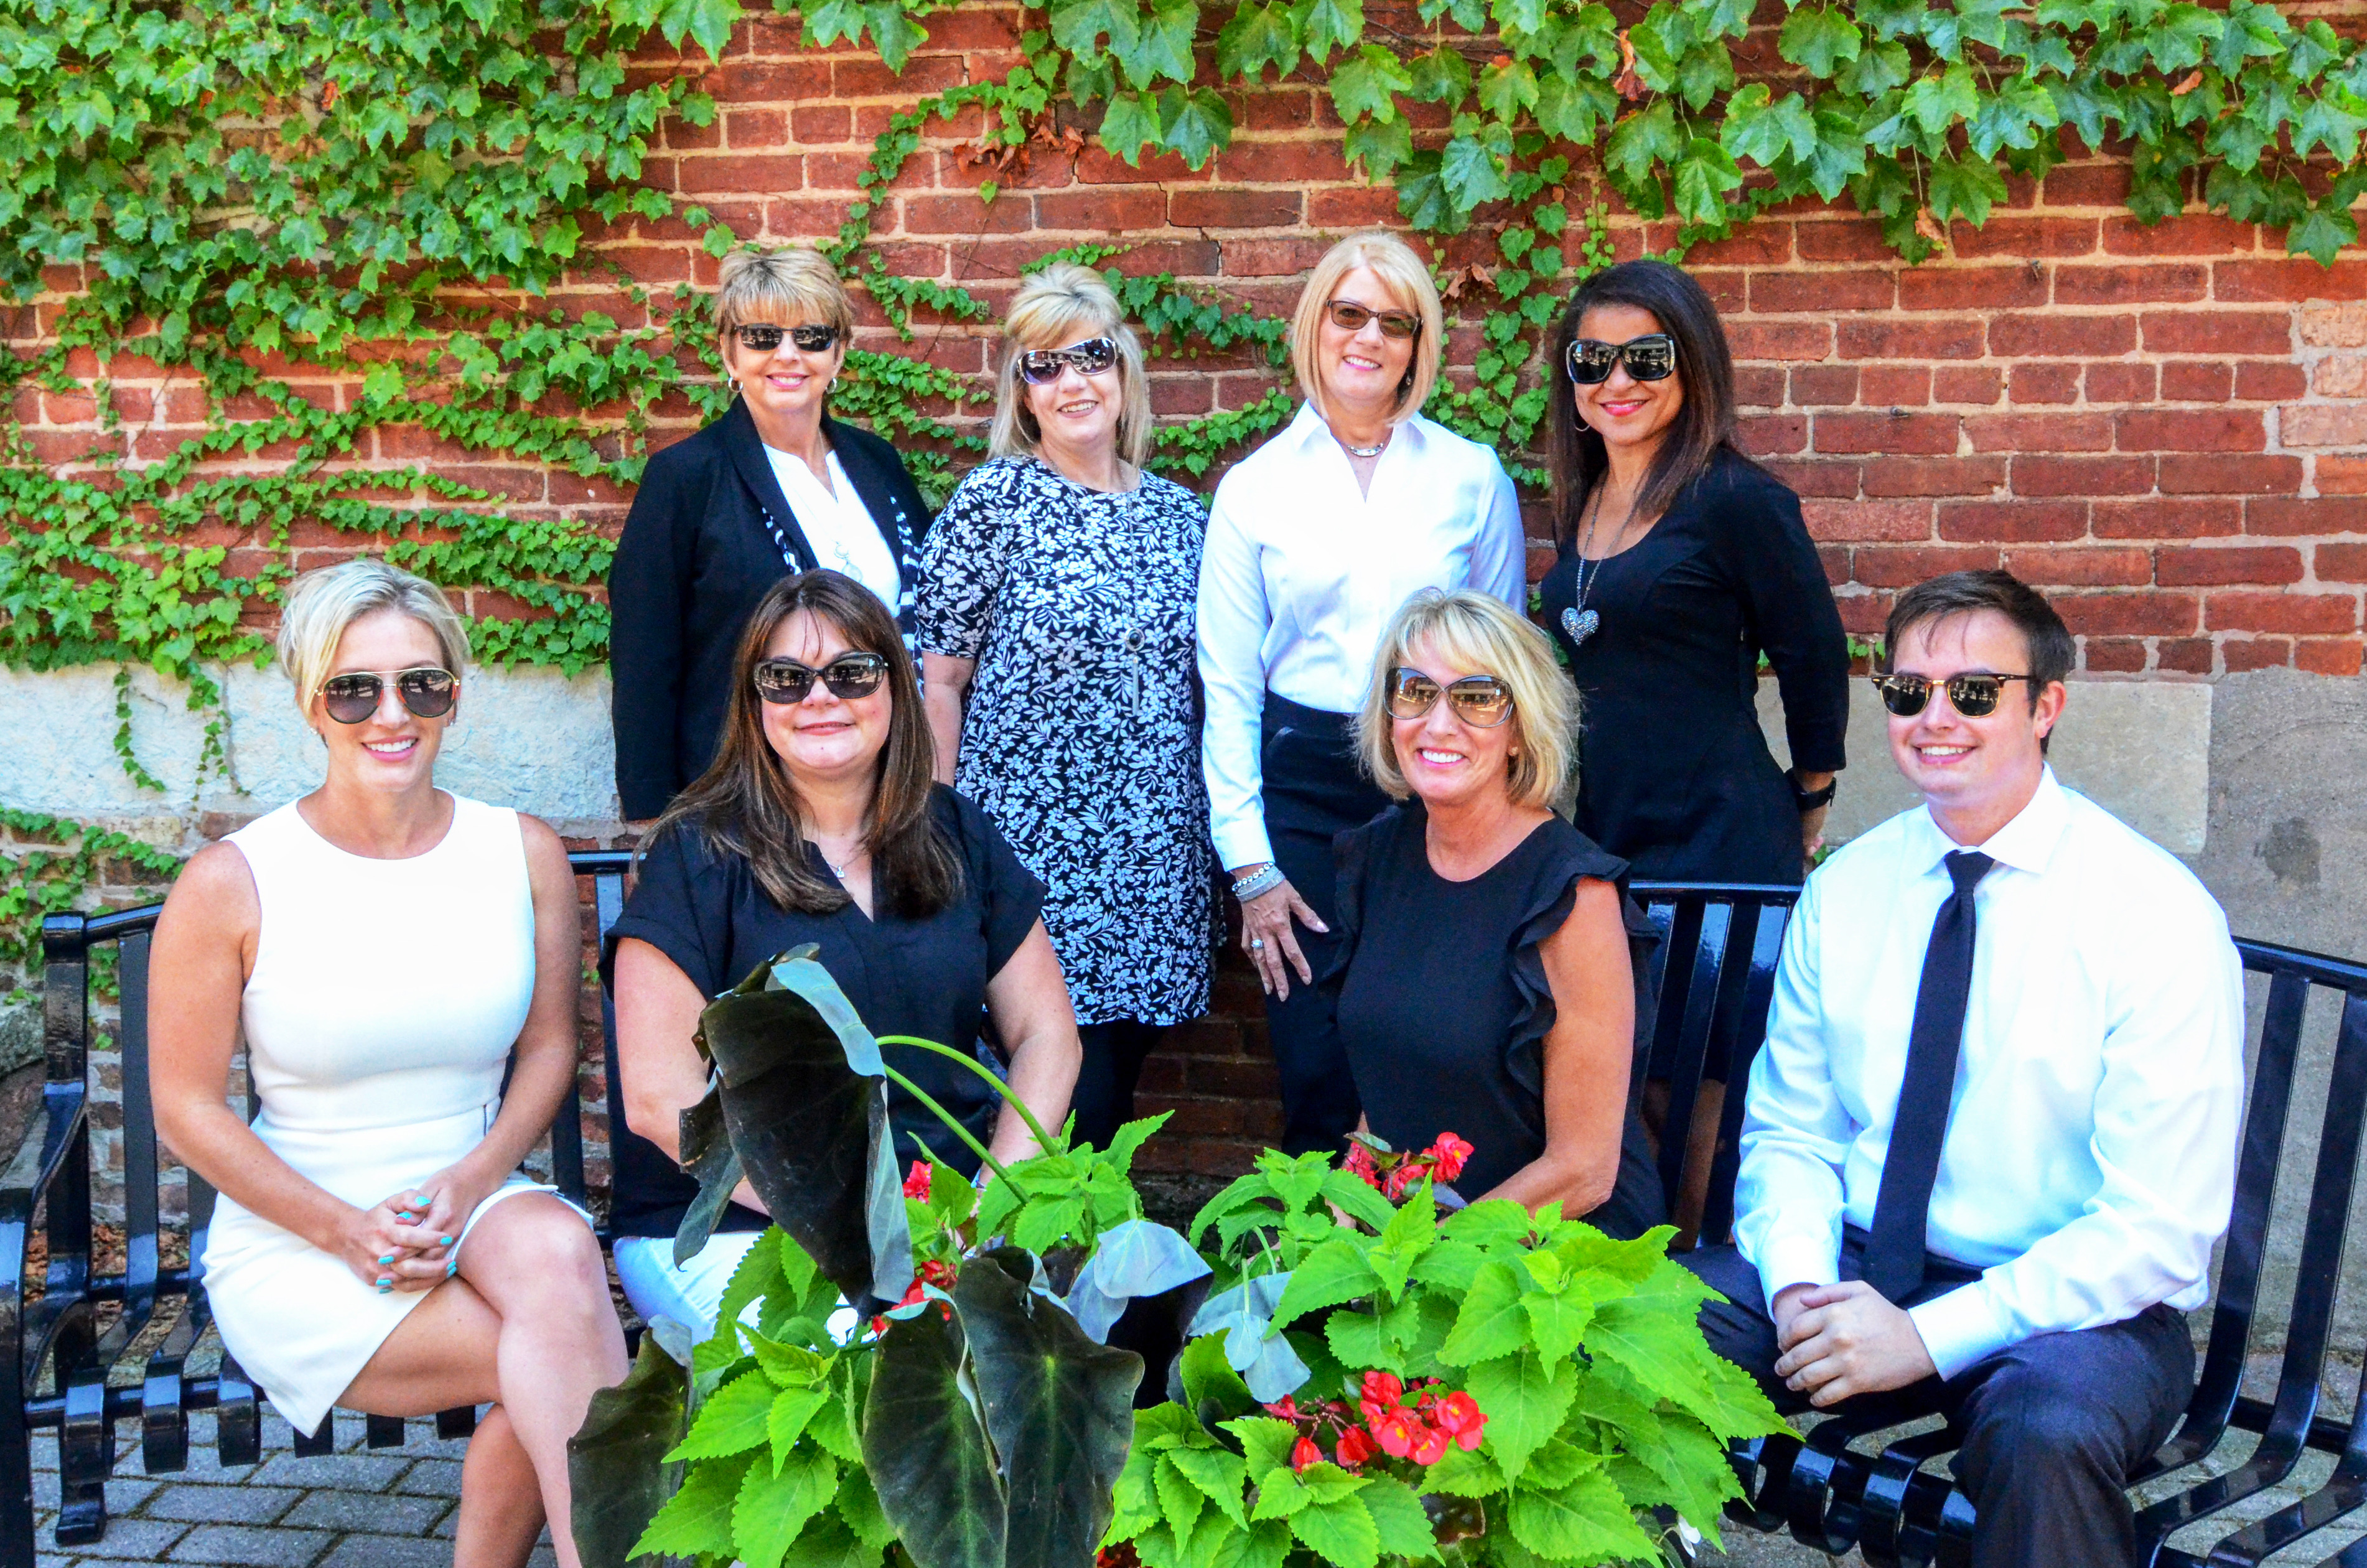 The Jana Caudill Team takes a photo wearing sunglasses to promote Crown Point Realtors.